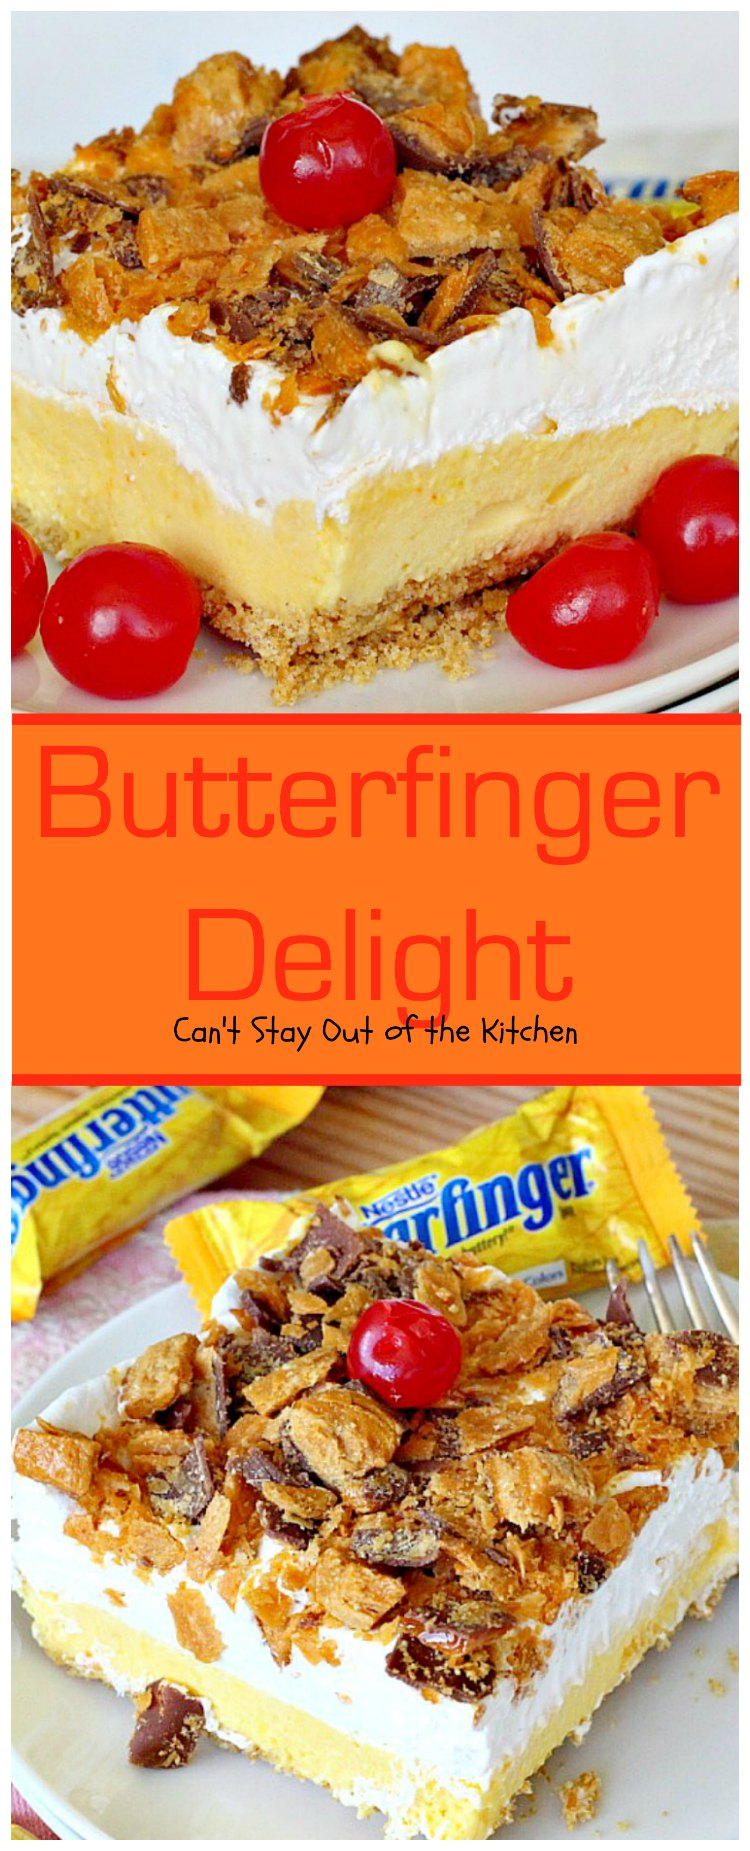 Butterfinger Delight | Can't Stay Out of the Kitchen